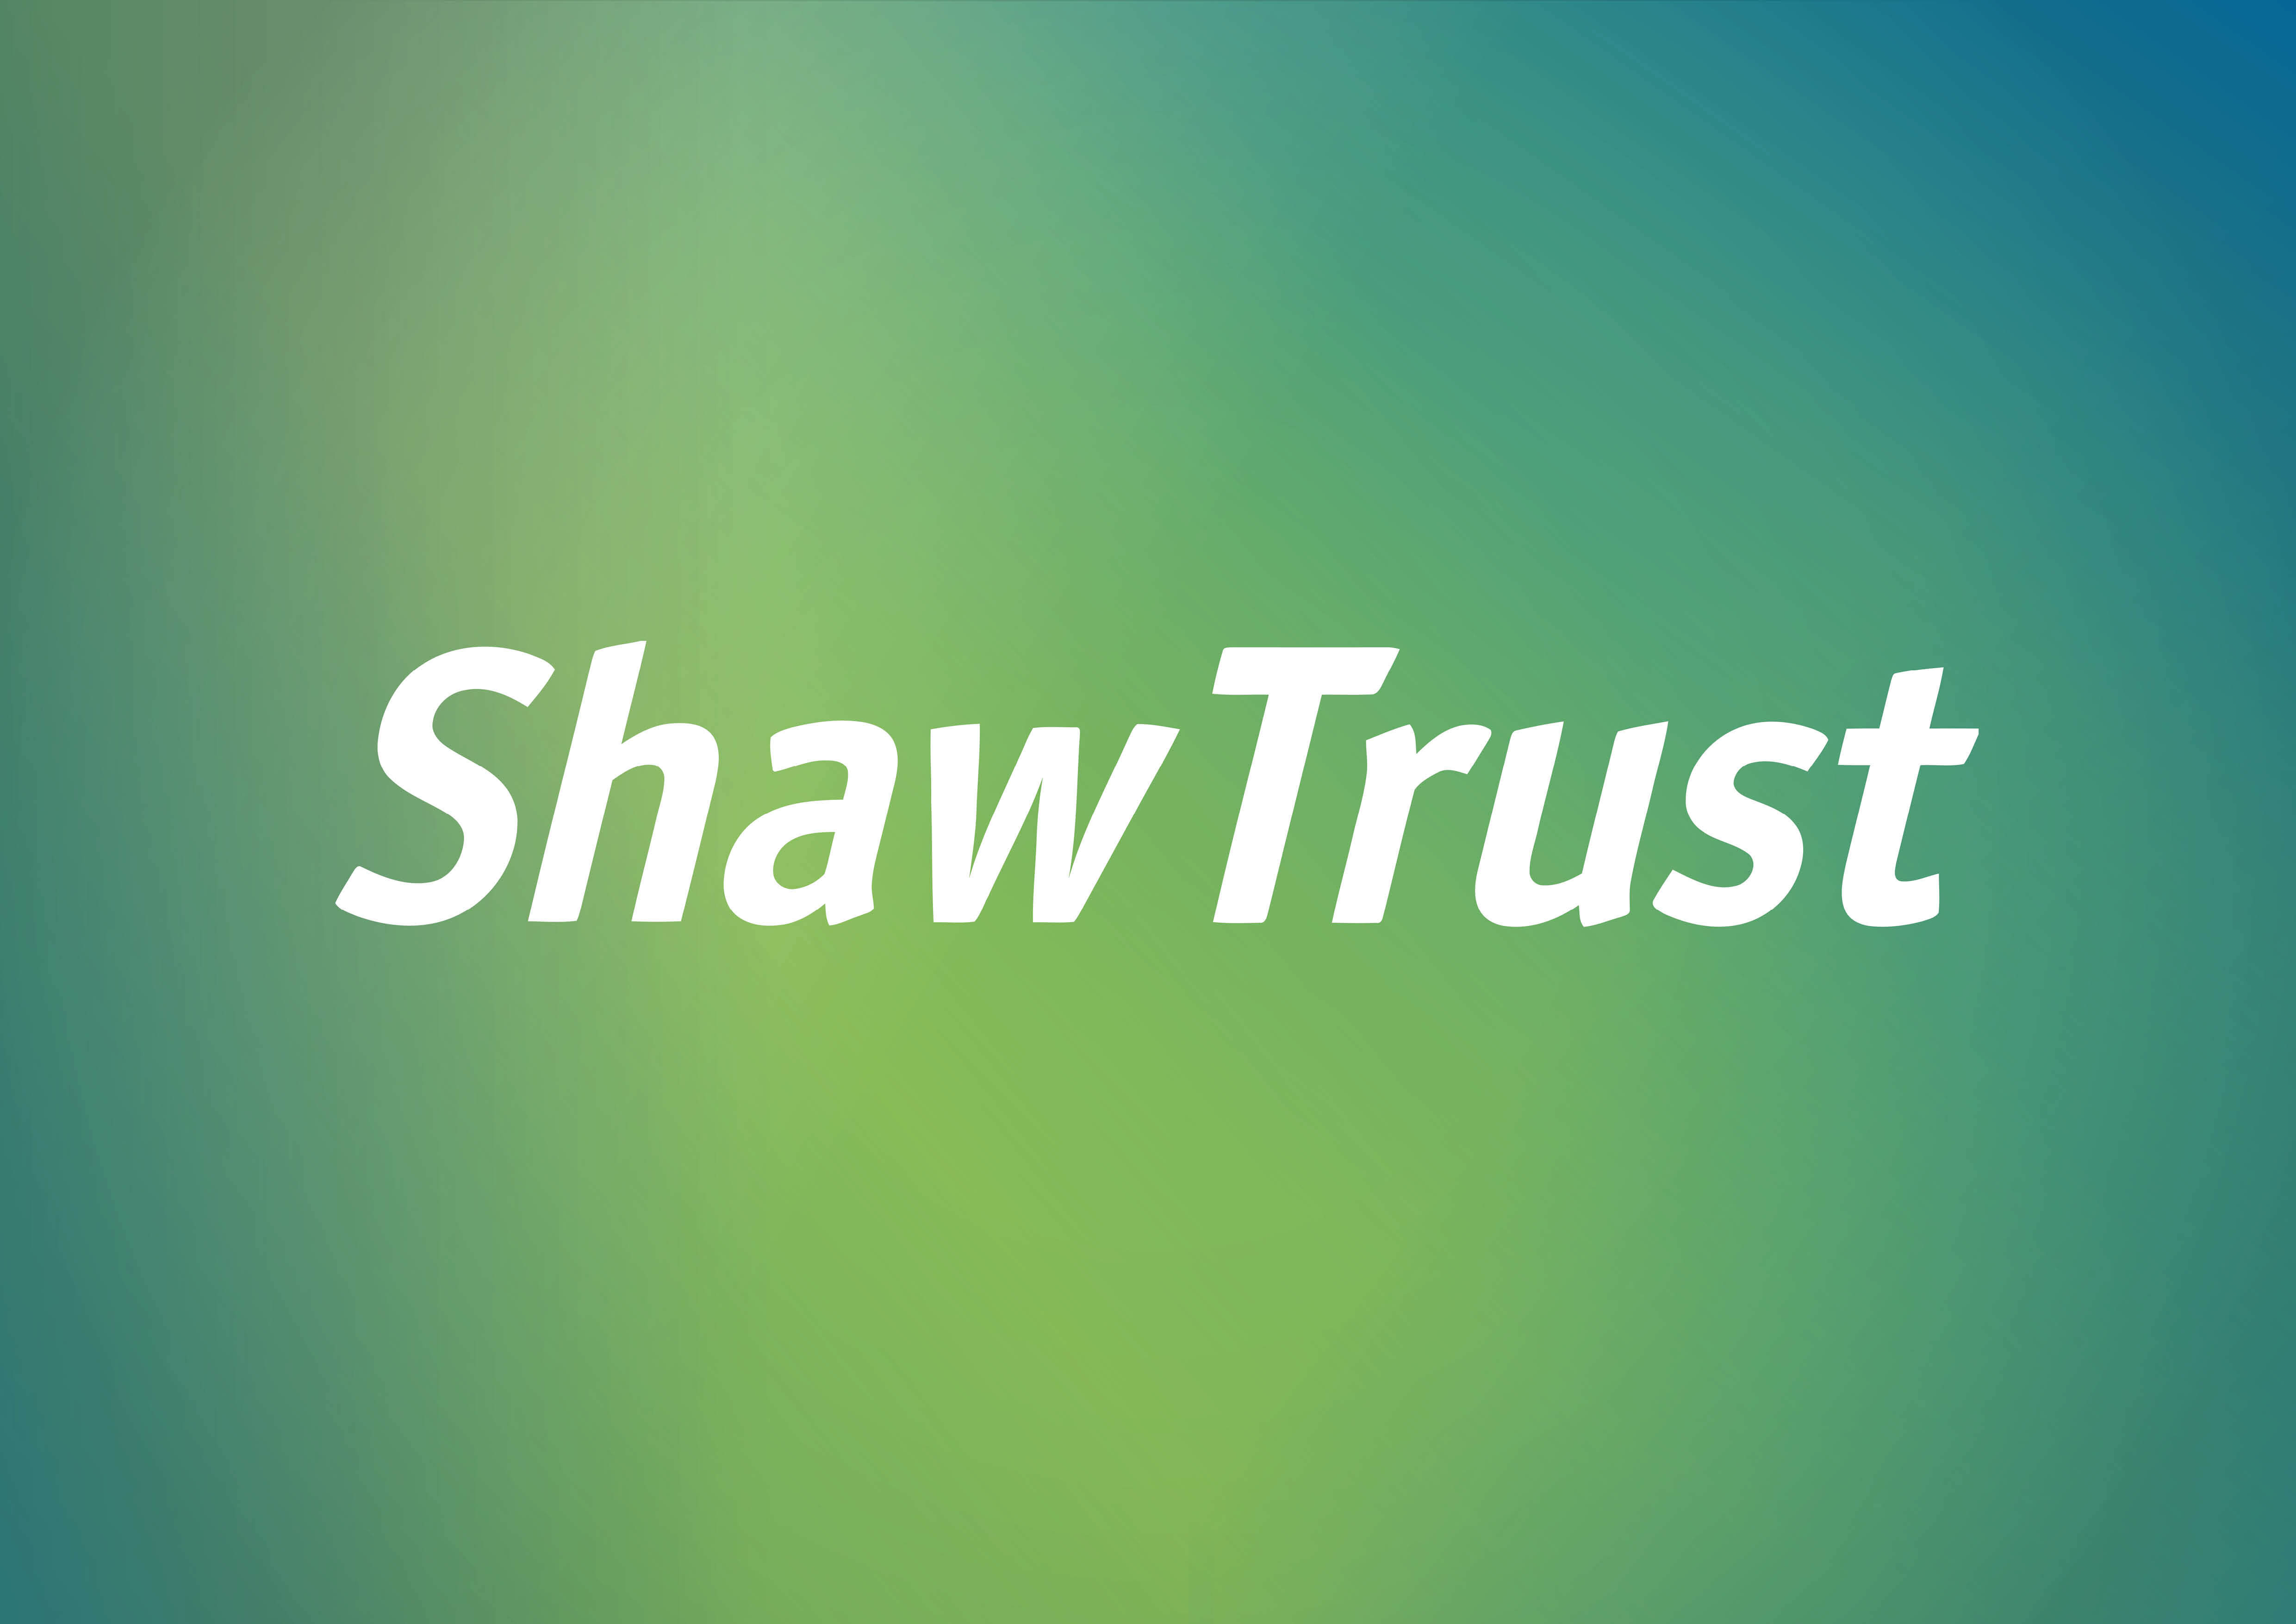 Shaw Trust is a national charity working to create brighter futures for the people and communities they serve. They deliver contracts worth over £89m and have over 1,00 staff over 196 sites. I created the 2016 and 2017 annual reports and oversaw the production from start to finish. In 2016 I sought to demonstrate the great individual stories of the individuals the charity has helped that year, while also emphasising the scale the charity operates at – how these stories are replicated thousands of times over through their great work. In 2017 production was key – how do you produce an impactful, useable documents for a range of different users – staff, trustees, customers, public? My idea was to break down the various elements and produce them in a way suited for each audience – while still being able to be presented altogether – a modular approach to annual reports which saves money and ensures the right materials get to the right people. The materials were also designed in Easy Read format, Braille, Large print and accessible PDF. Accessibility is a passion of mine and I am experienced working with users with a range of needs and understanding their requirements and have developed my own range of unique solutions.